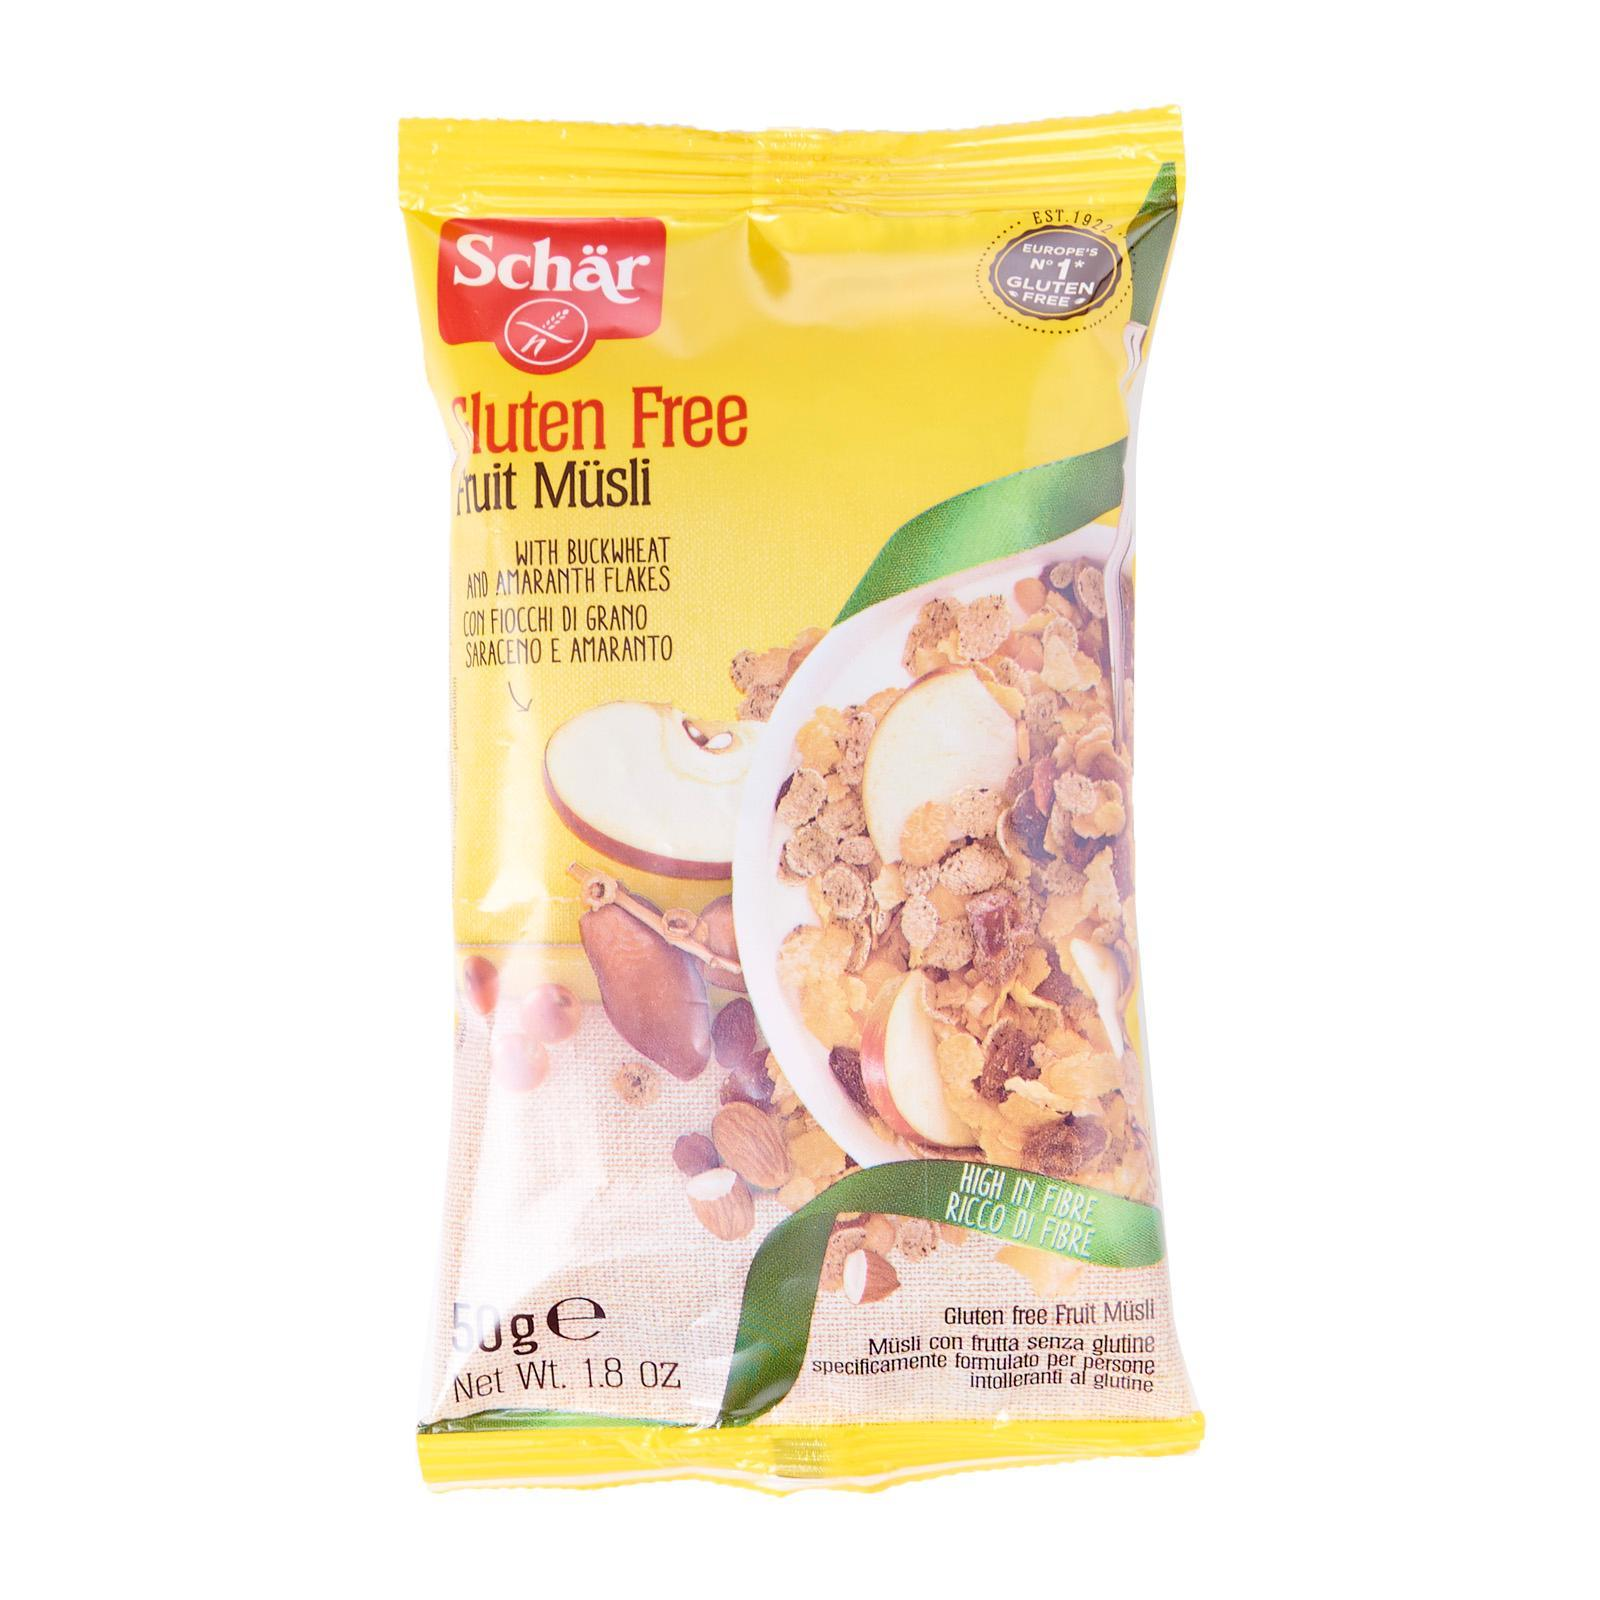 Dr. Schar Fruit Muesli Single Serve - Gluten Free by Agora Products